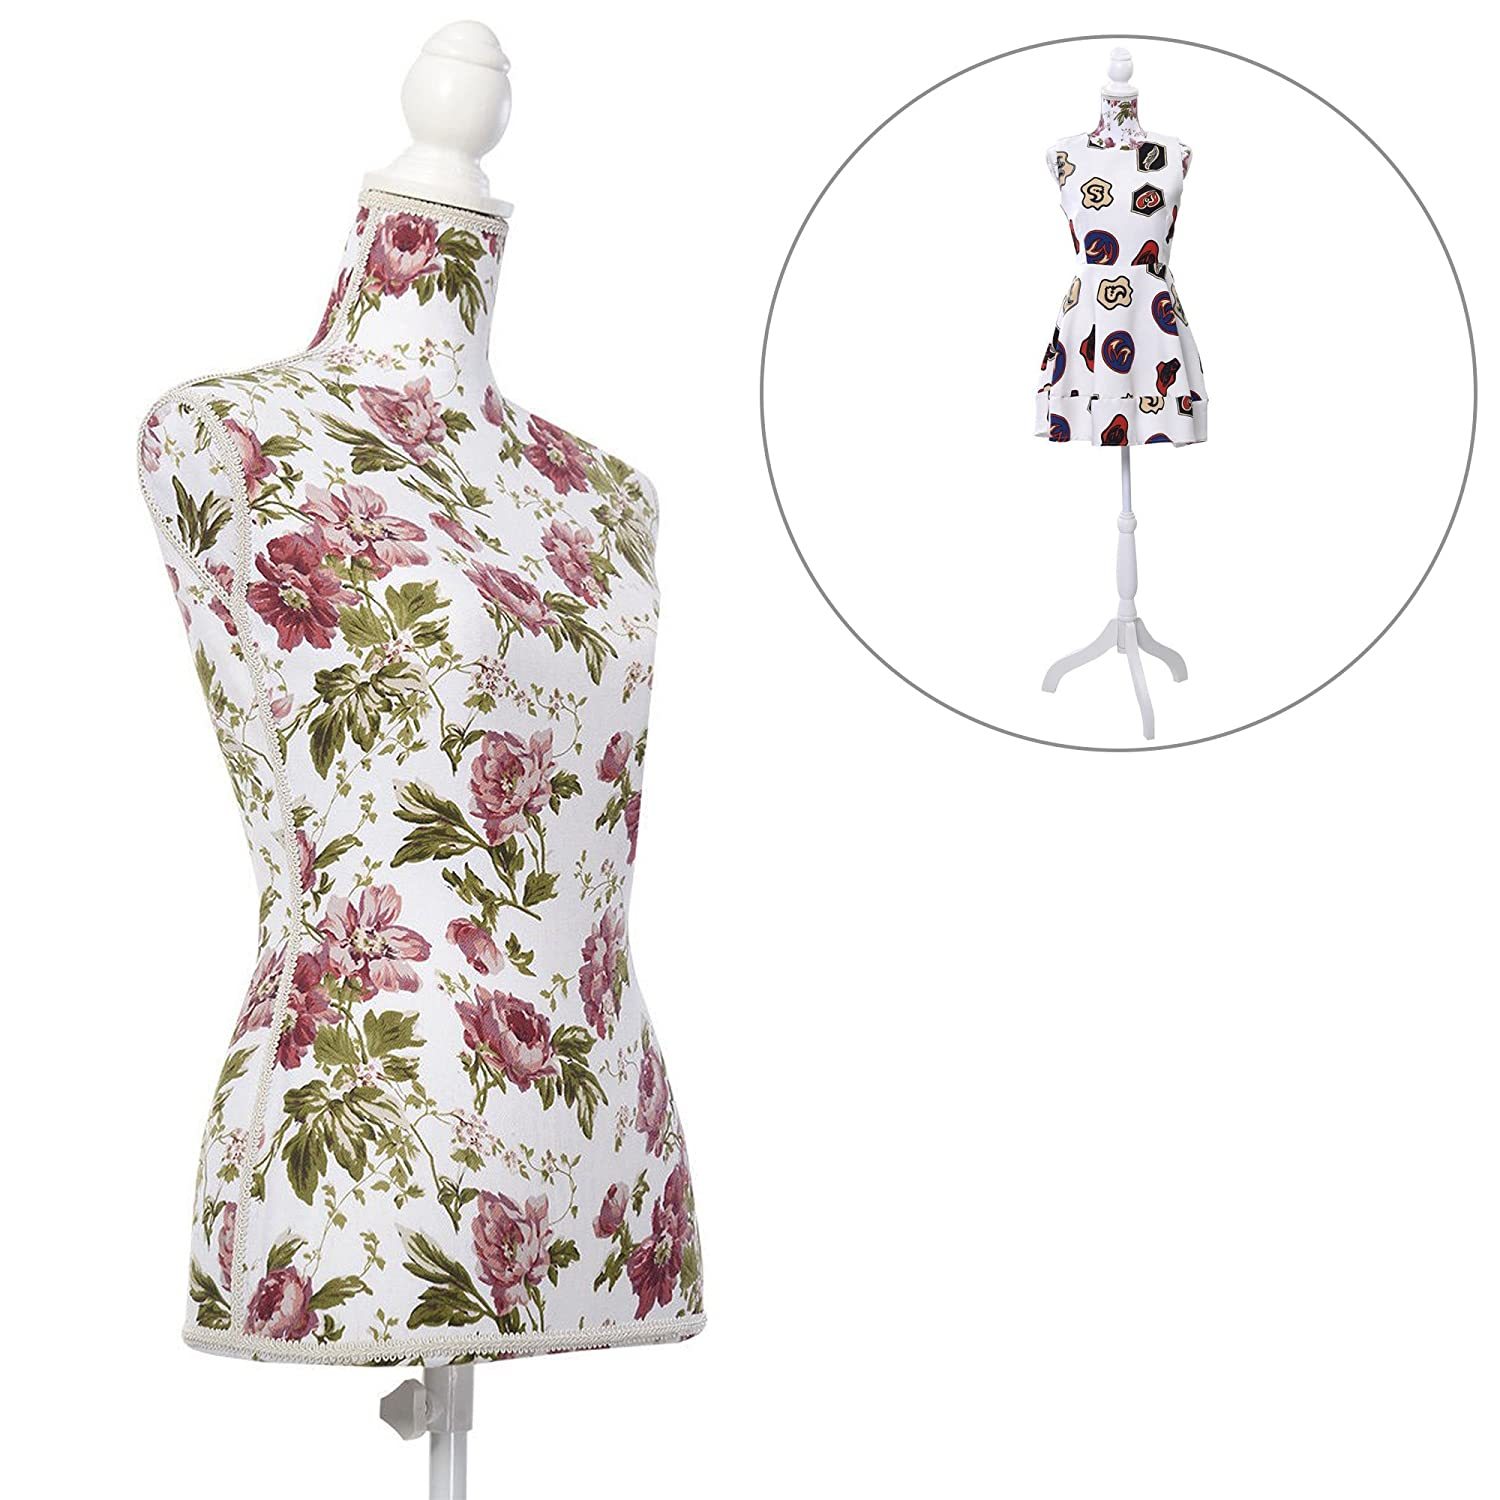 Female Mannequin Torso Clothes Display - Dress Form Body Mannequins W/Tripod Stand Dressmakers Clothing Stores Dummy - Adjustable 51.2' to 66.2' (Rose Pattern) DUSTNIE